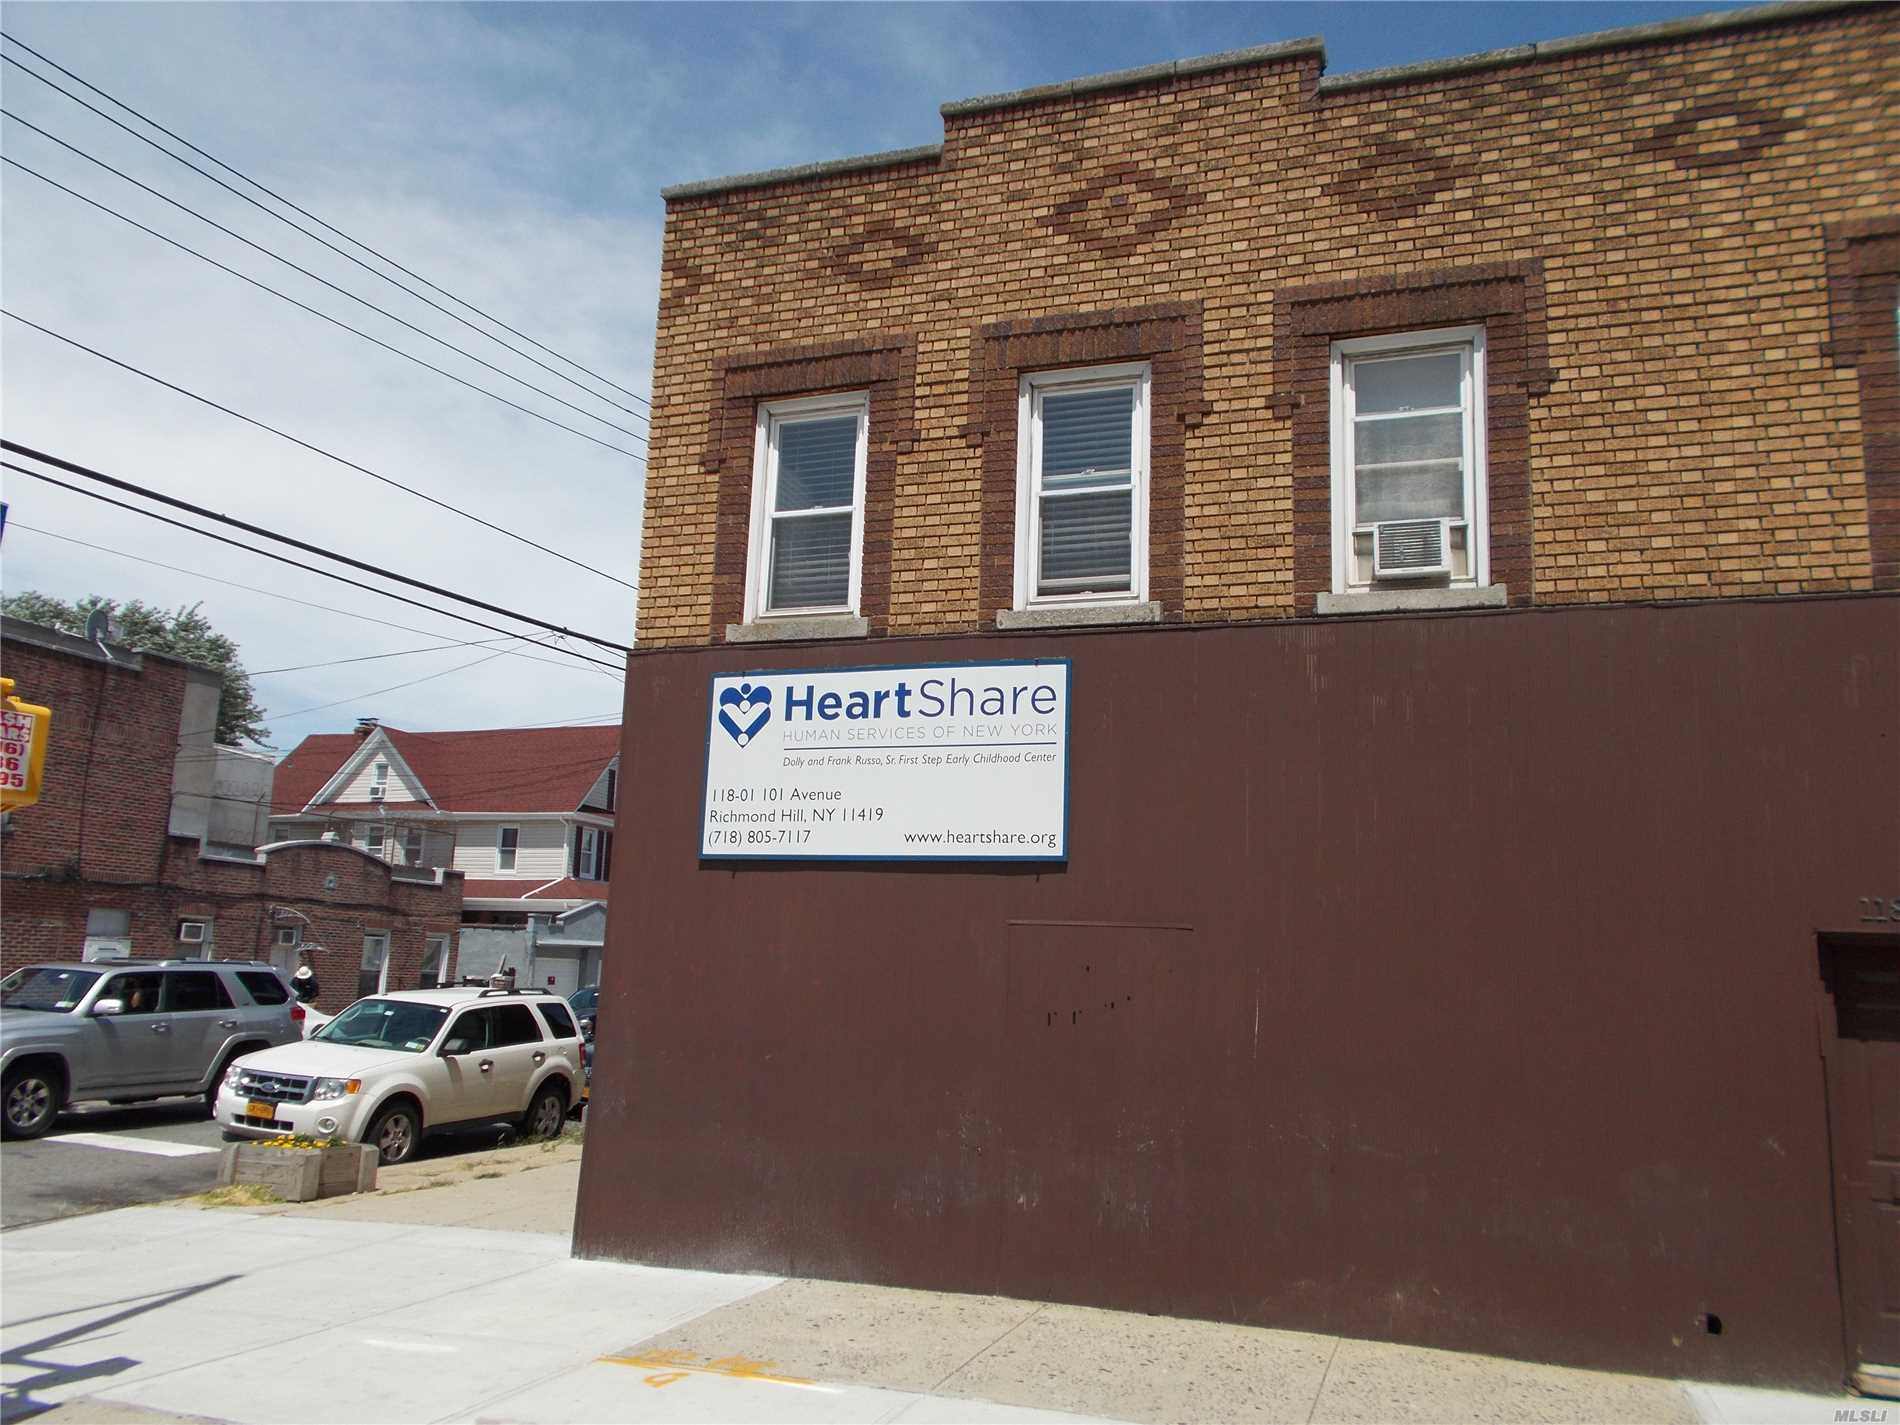 Semi-Detached Brick Mixed Use Building First Floor Is Rented Presently To School (No Lease) Second Floor Has Two 3 Room Apartments (No Leases).